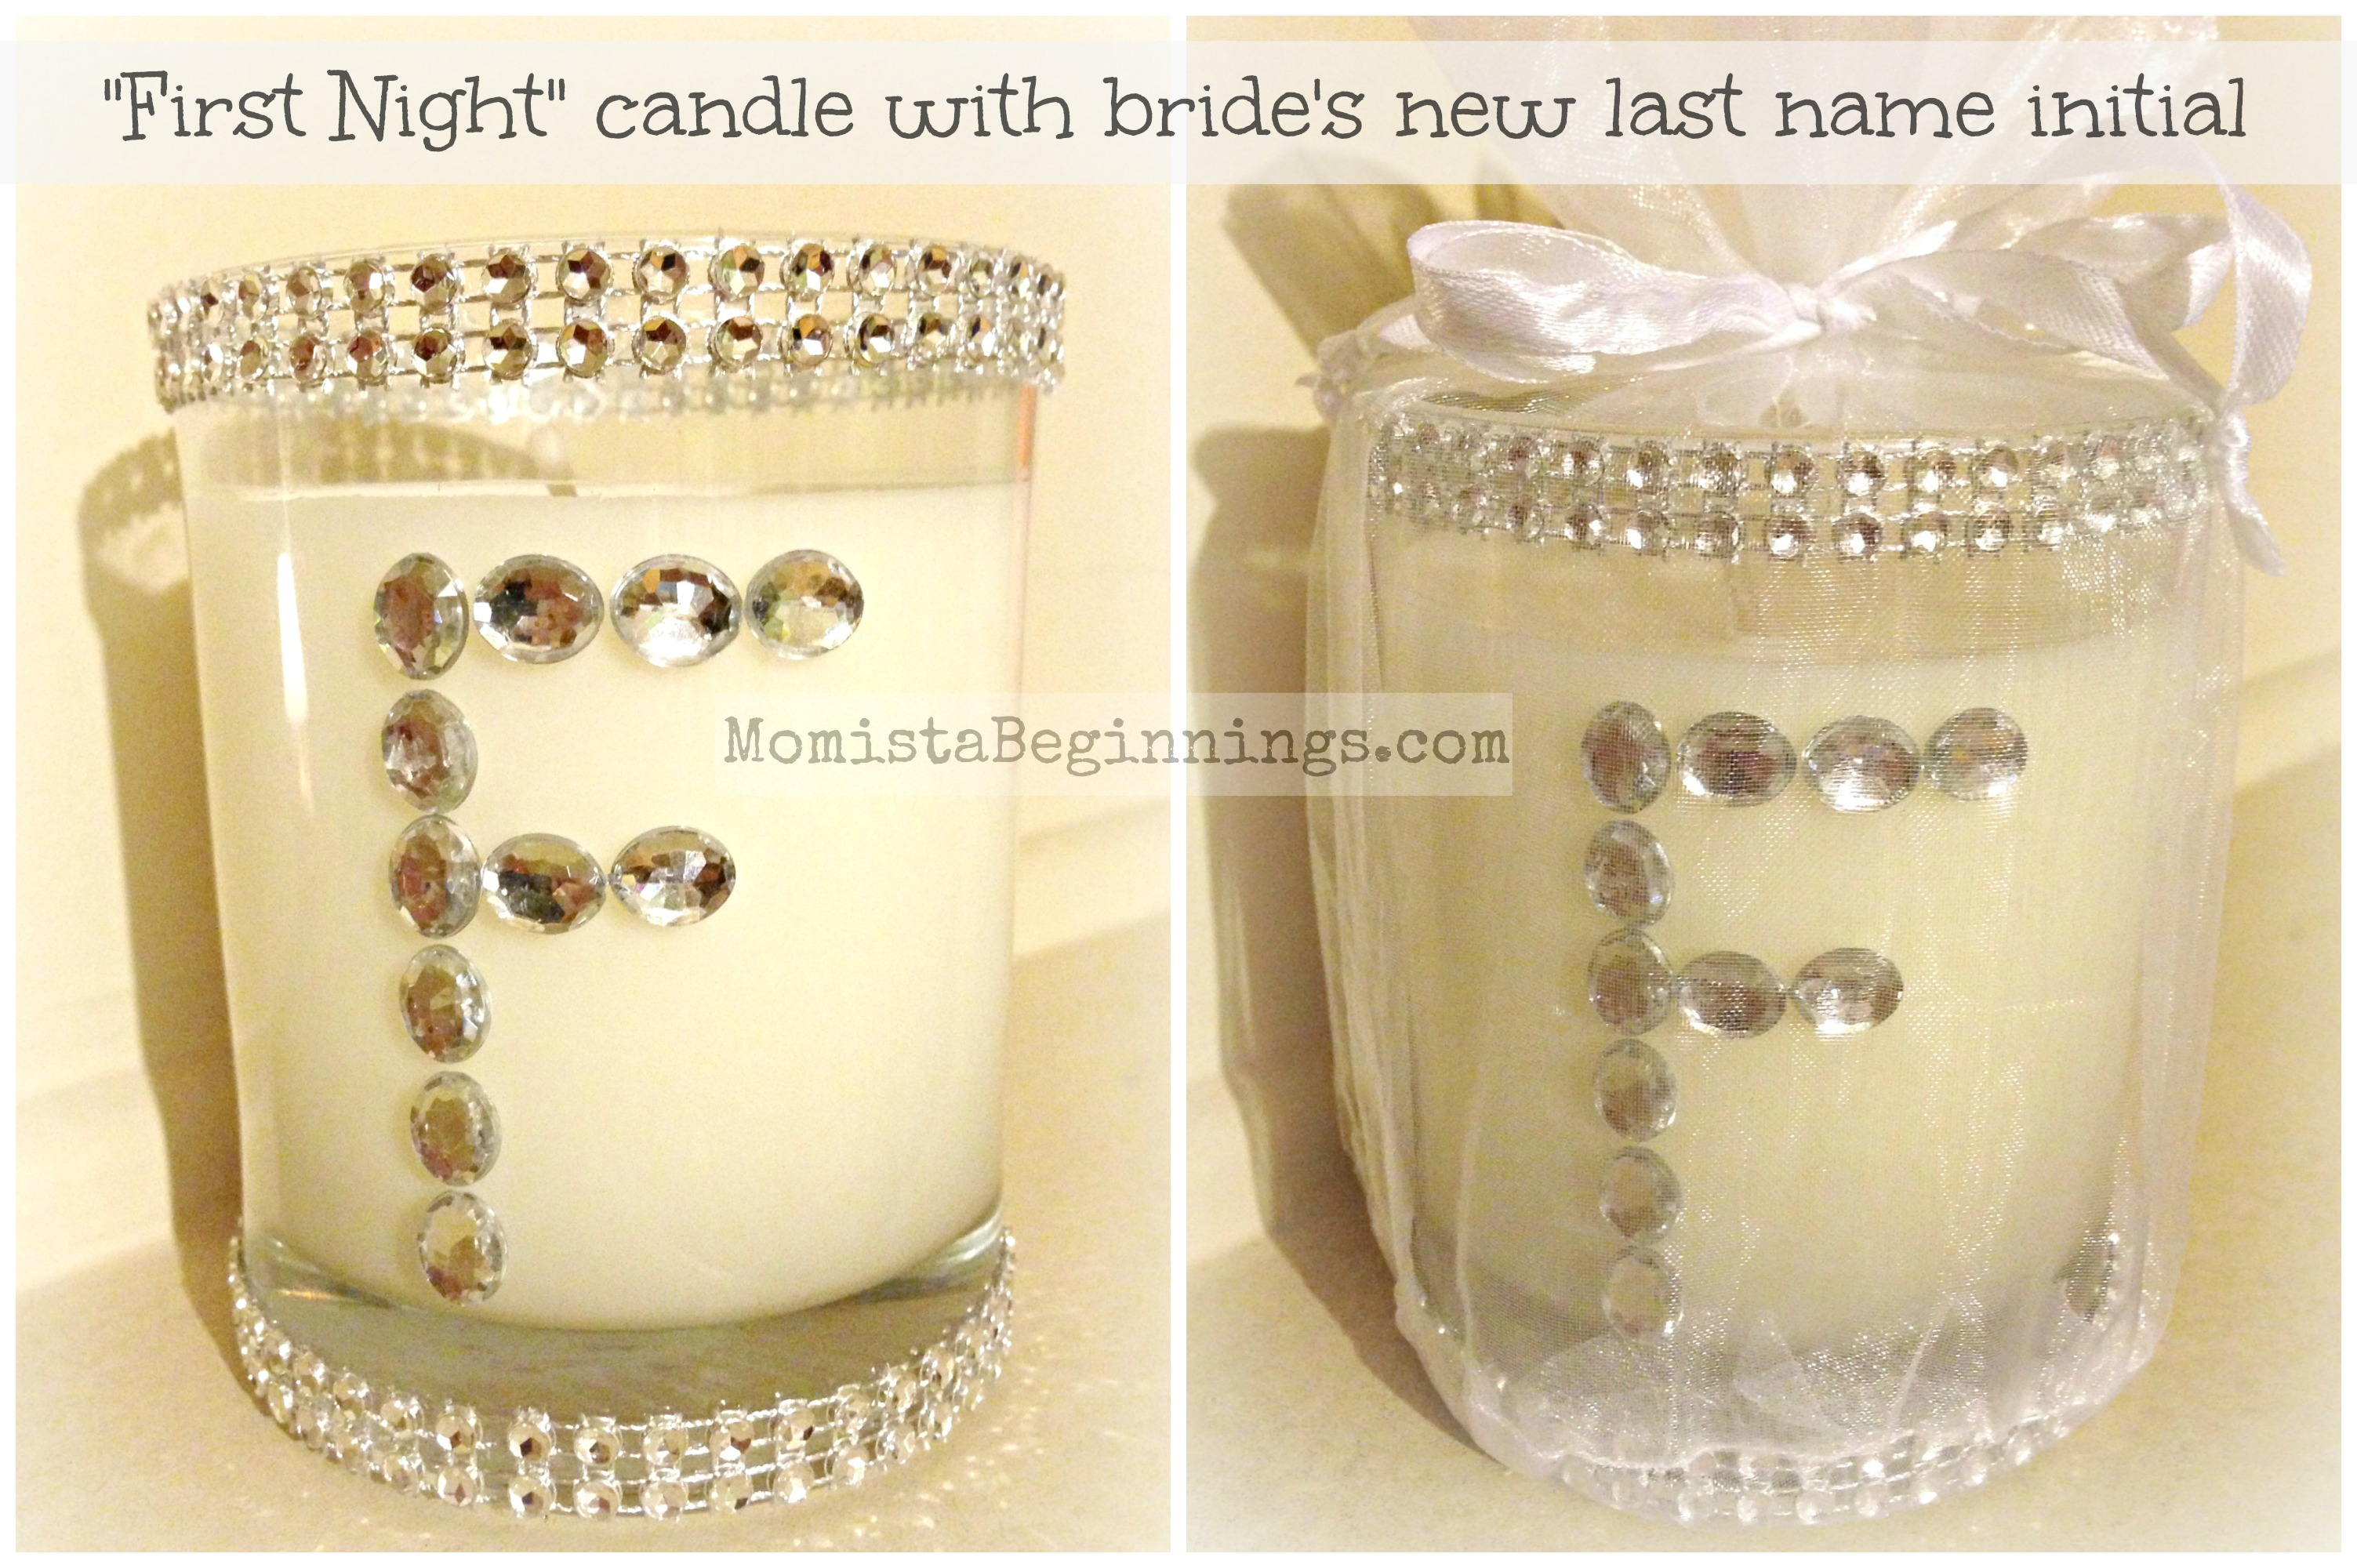 Wedding Night Gift From Bride To Groom : Wedding Night Gift For Bride basket of firsts for the bride and groom ...